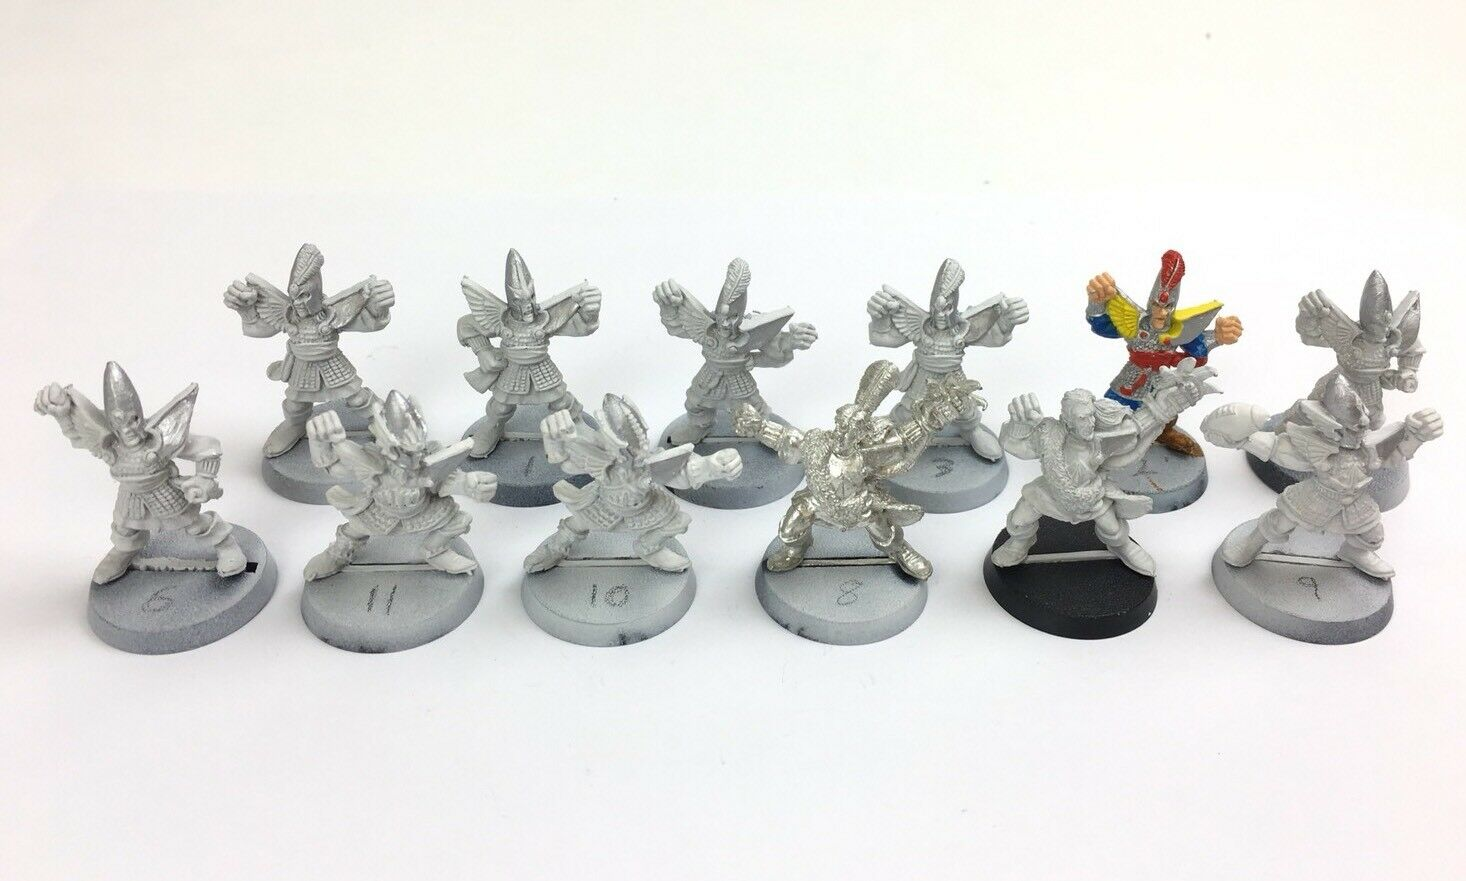 Citadel Bloodbowl High Elf Team Lion Warriors Gladrieth Gladiators 12 Metal